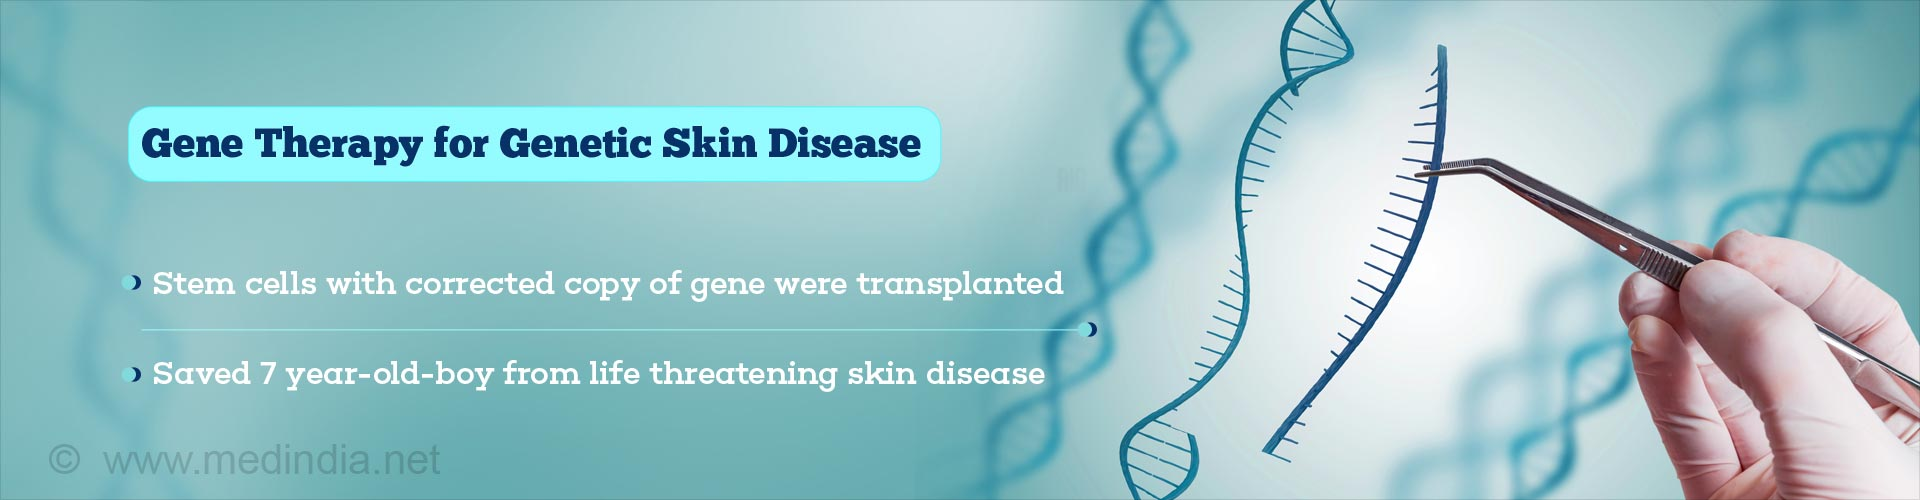 Gene Therapy For Genetic Skin Disease Using Epidermal Stem Cells